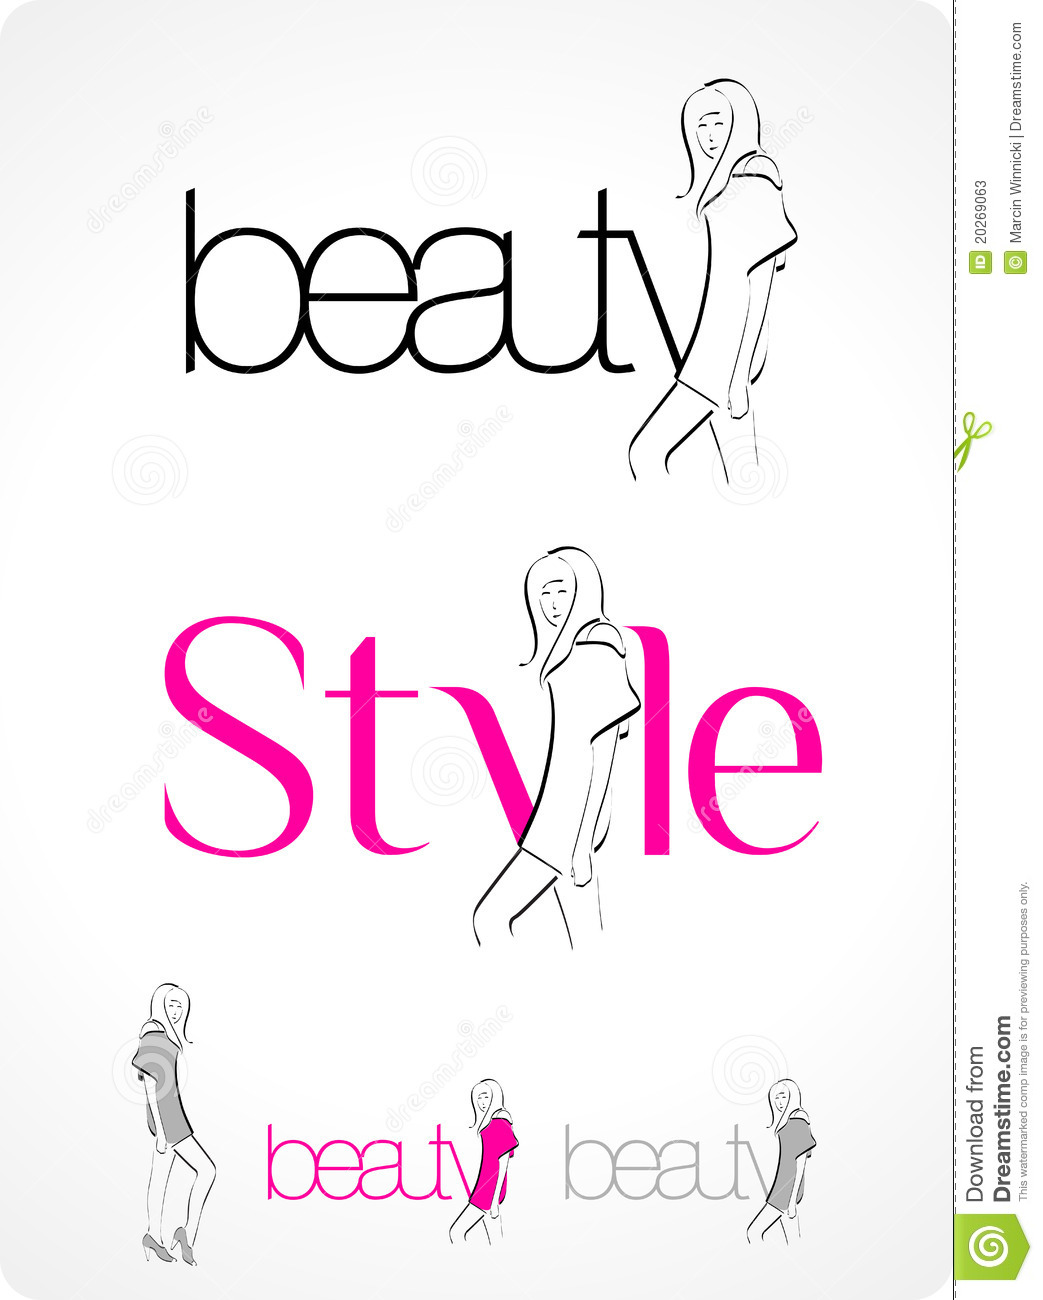 Logo - Fashion